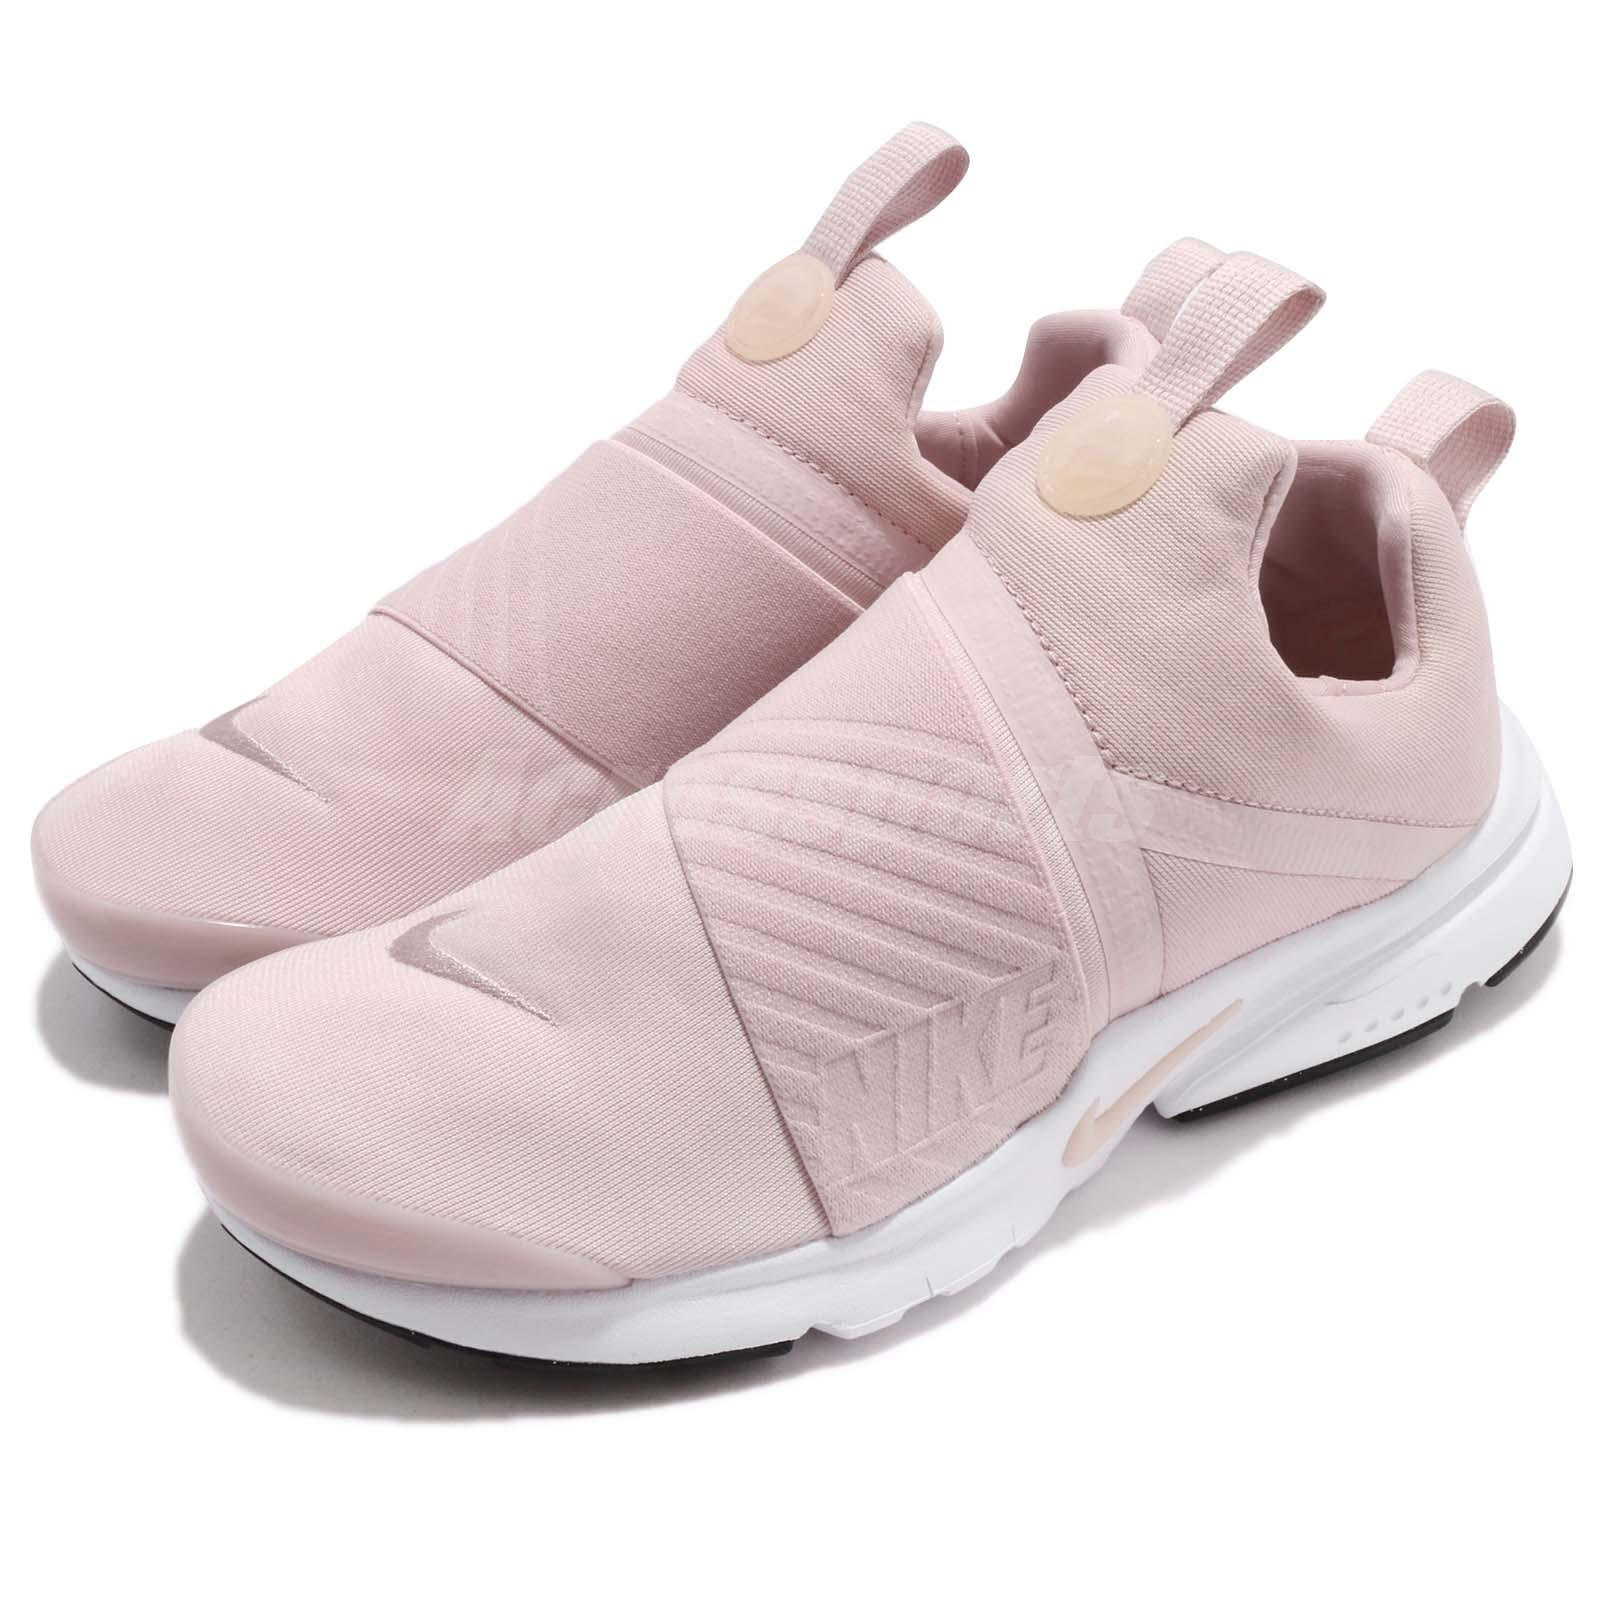 low priced 5d599 95baa Details about Nike Presto Extreme GS Barely Rose Pink White Kid Women  Running Shoes 870022-601